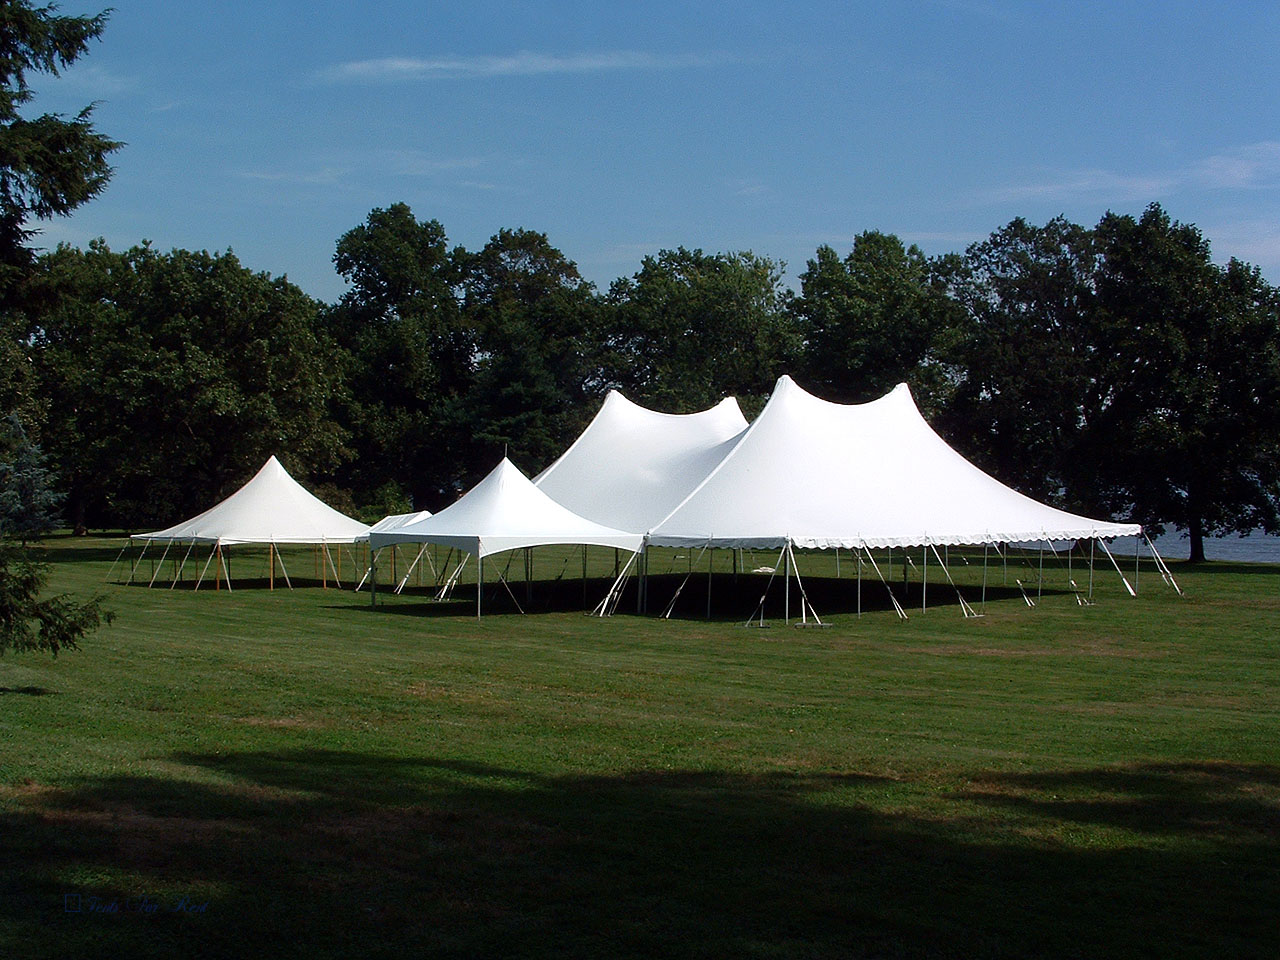 60x70, 30x30 and 10x10 white wedding tents